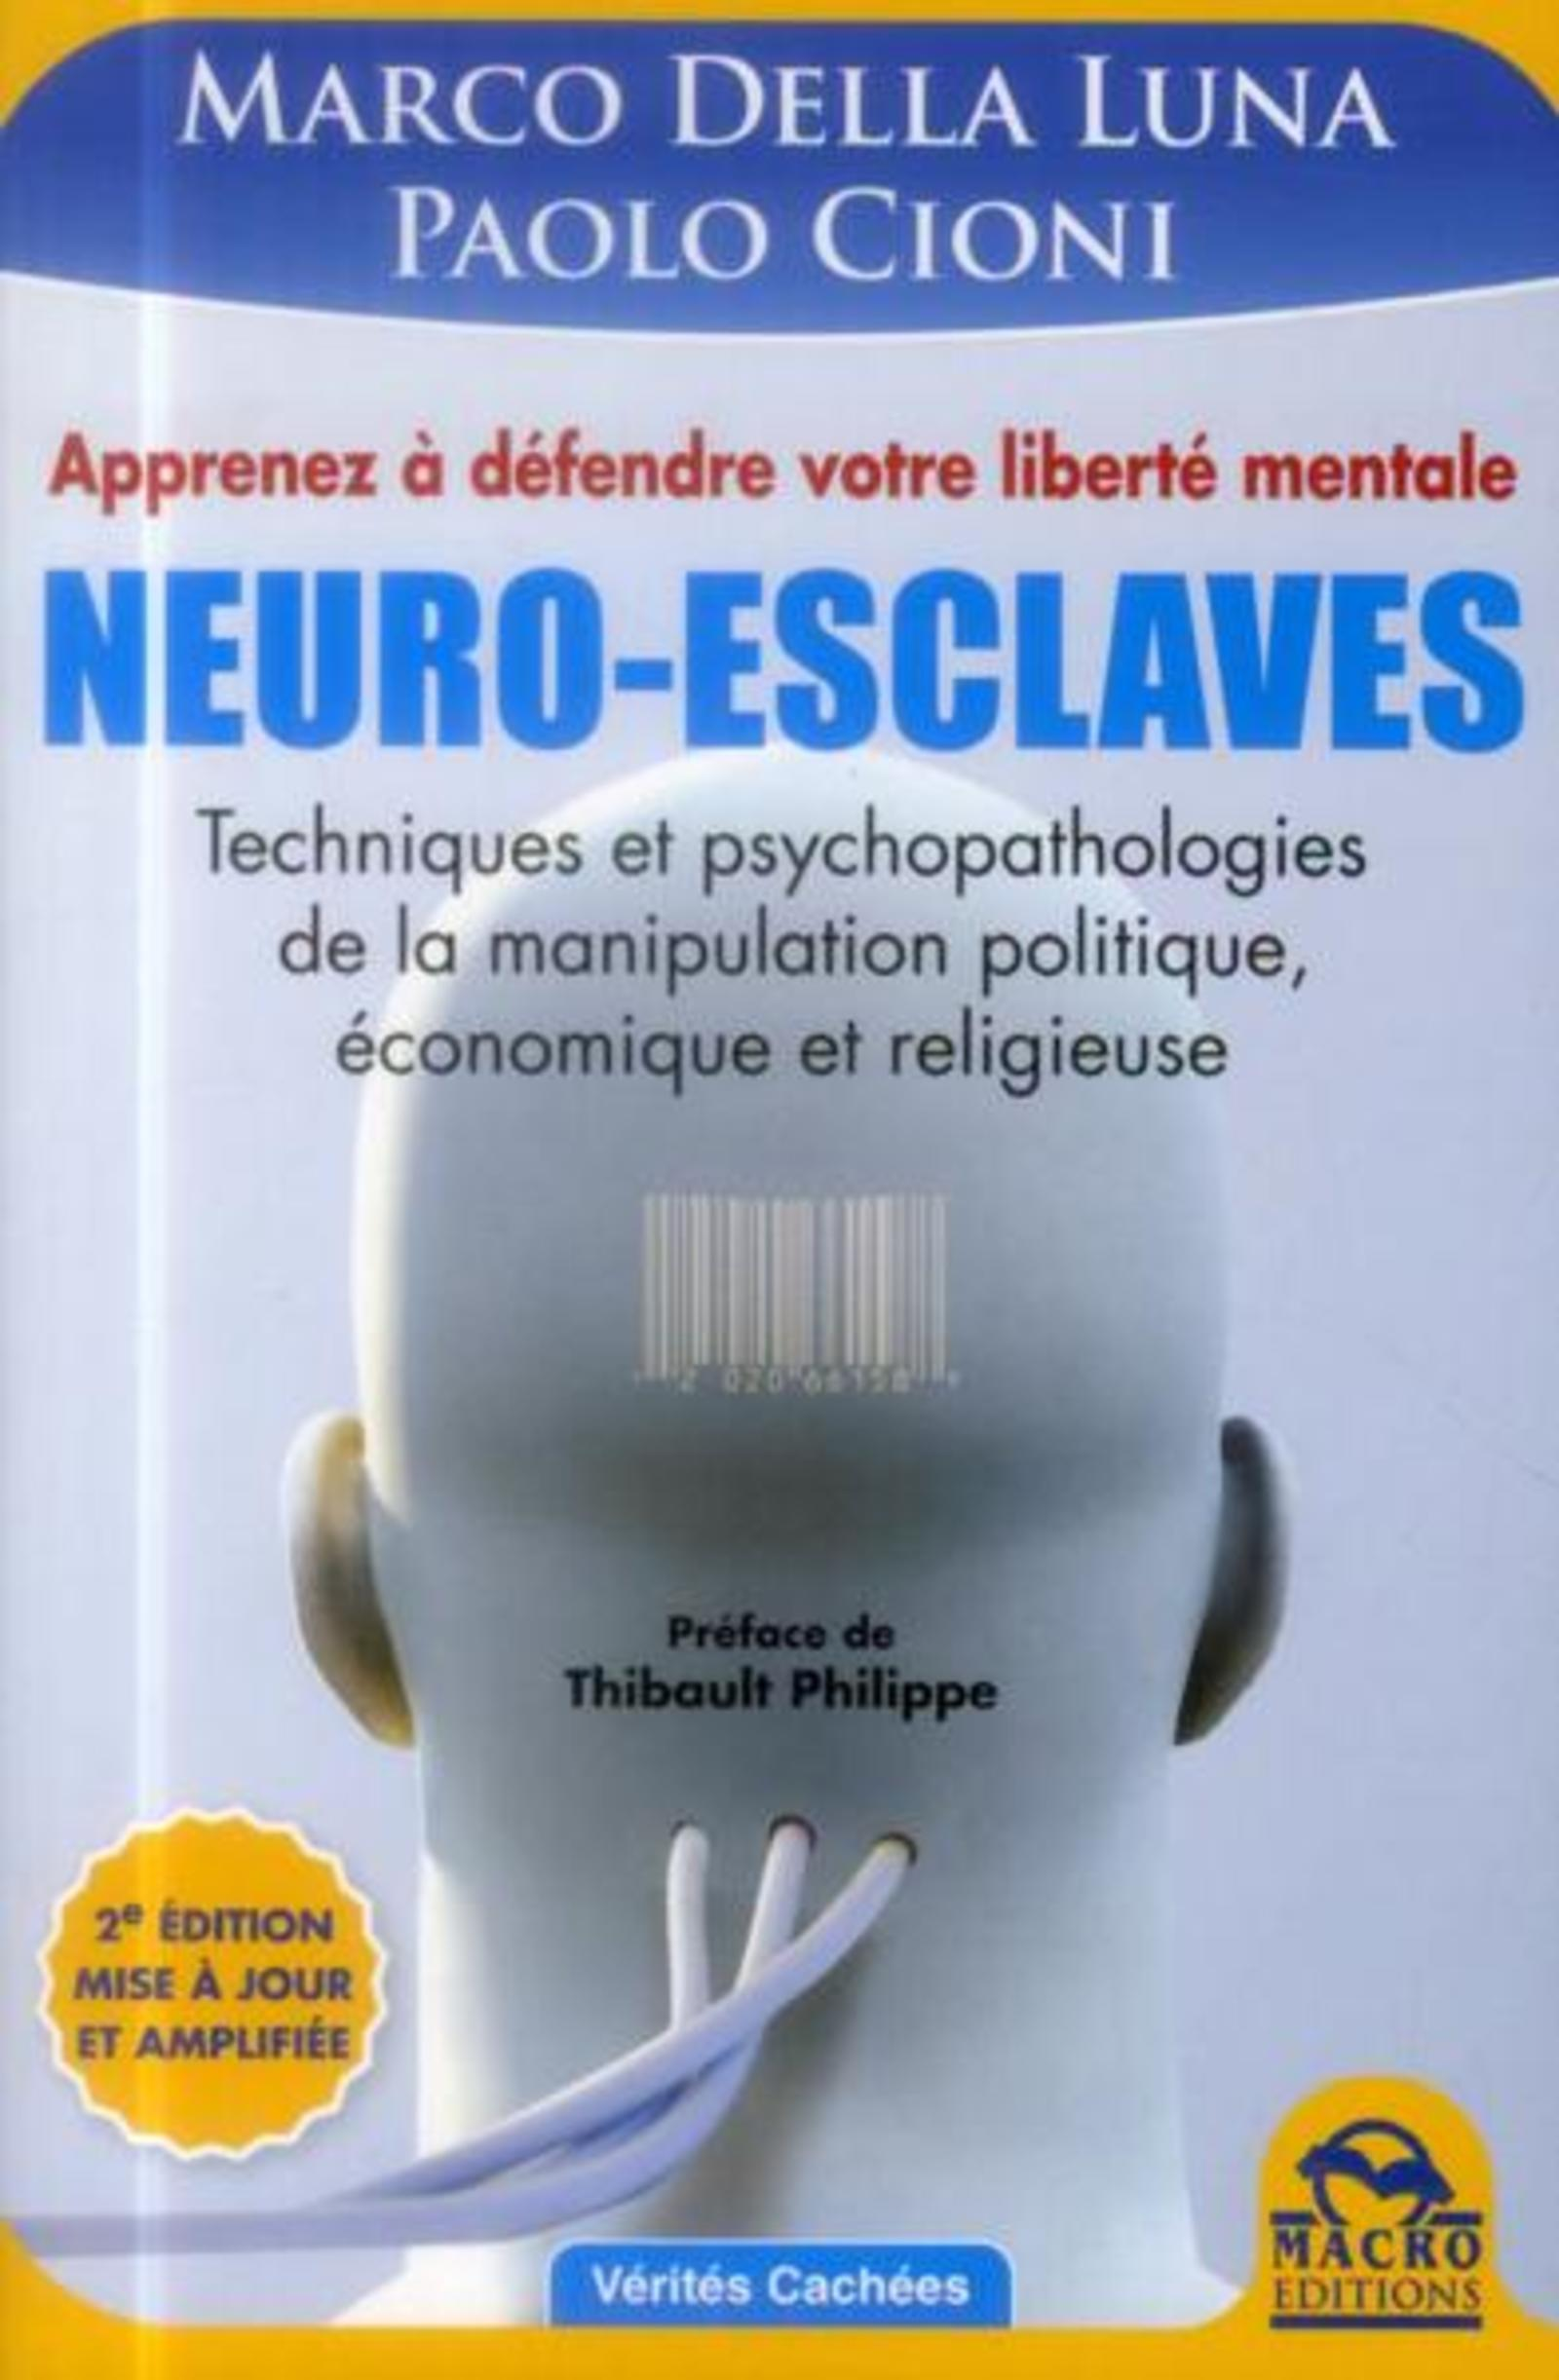 NEURO-ESCLAVES